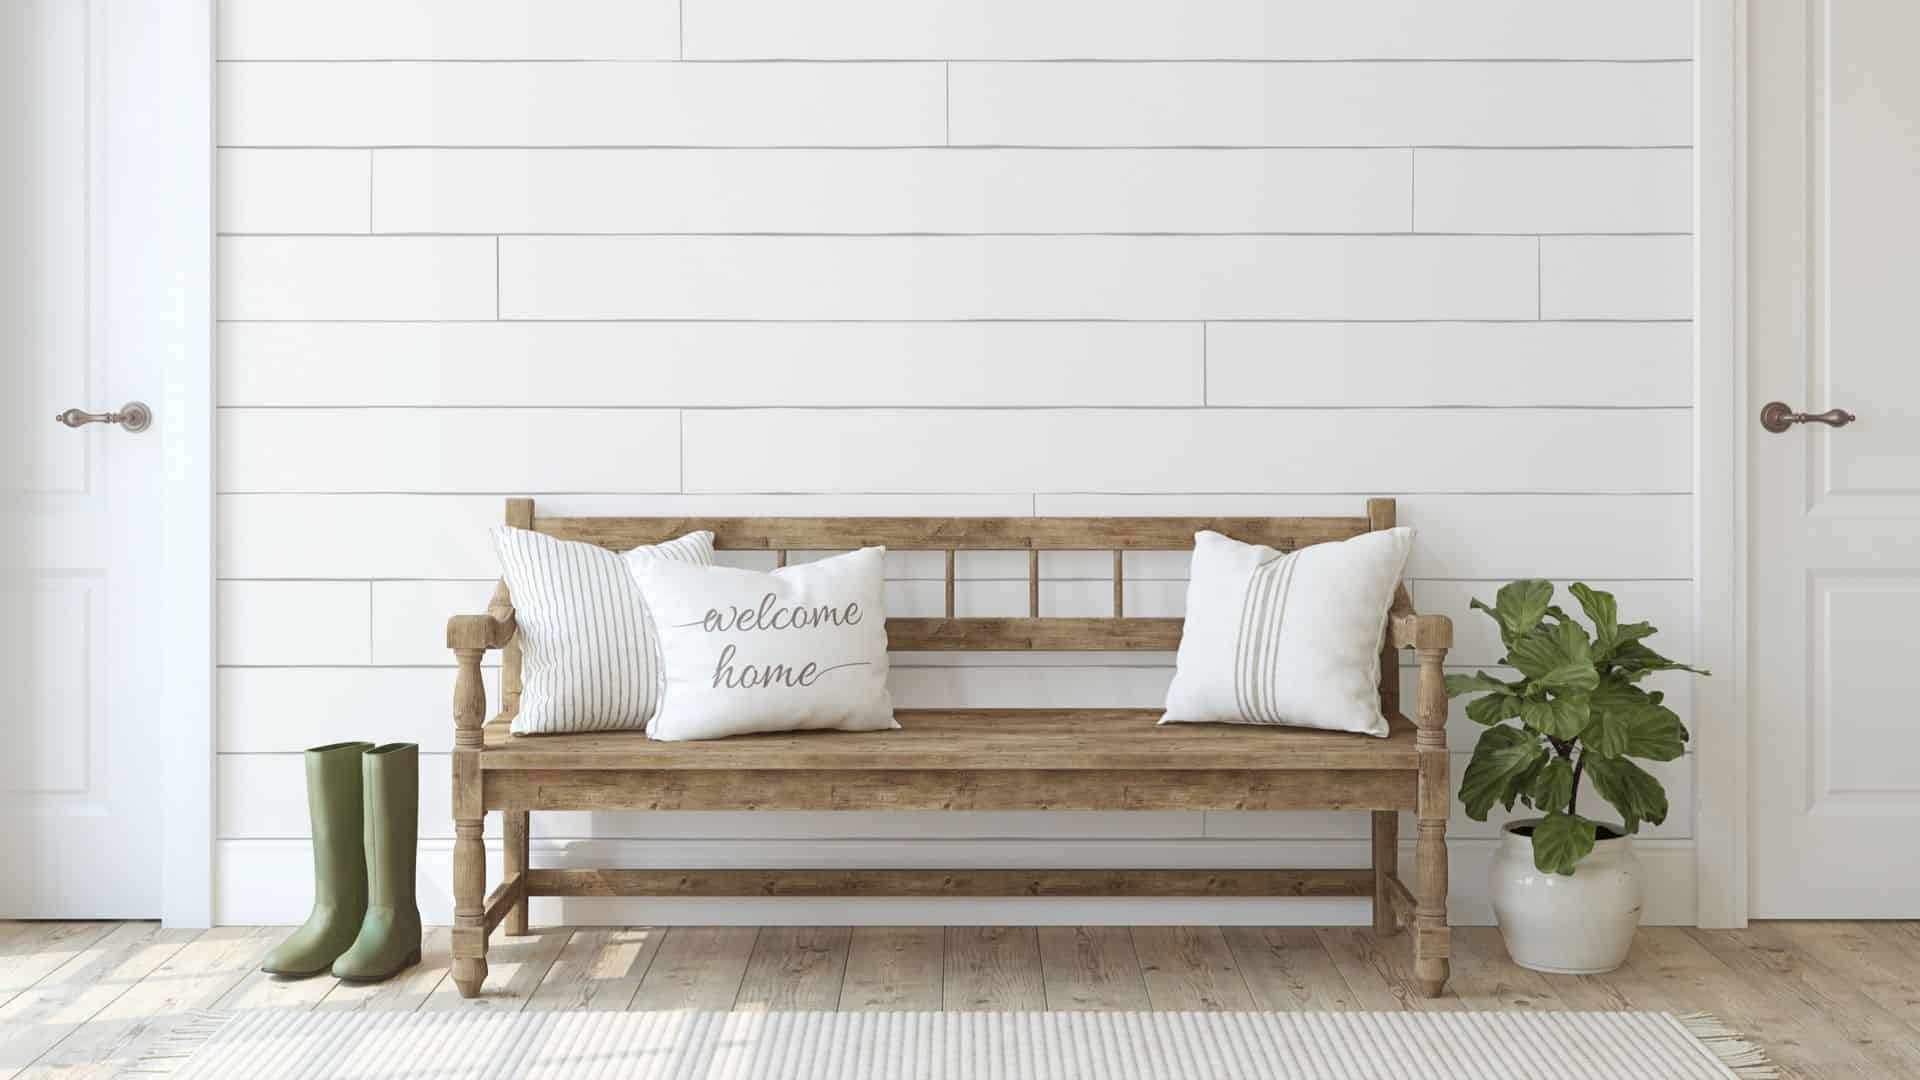 How To Make Farmhouse Decor Work